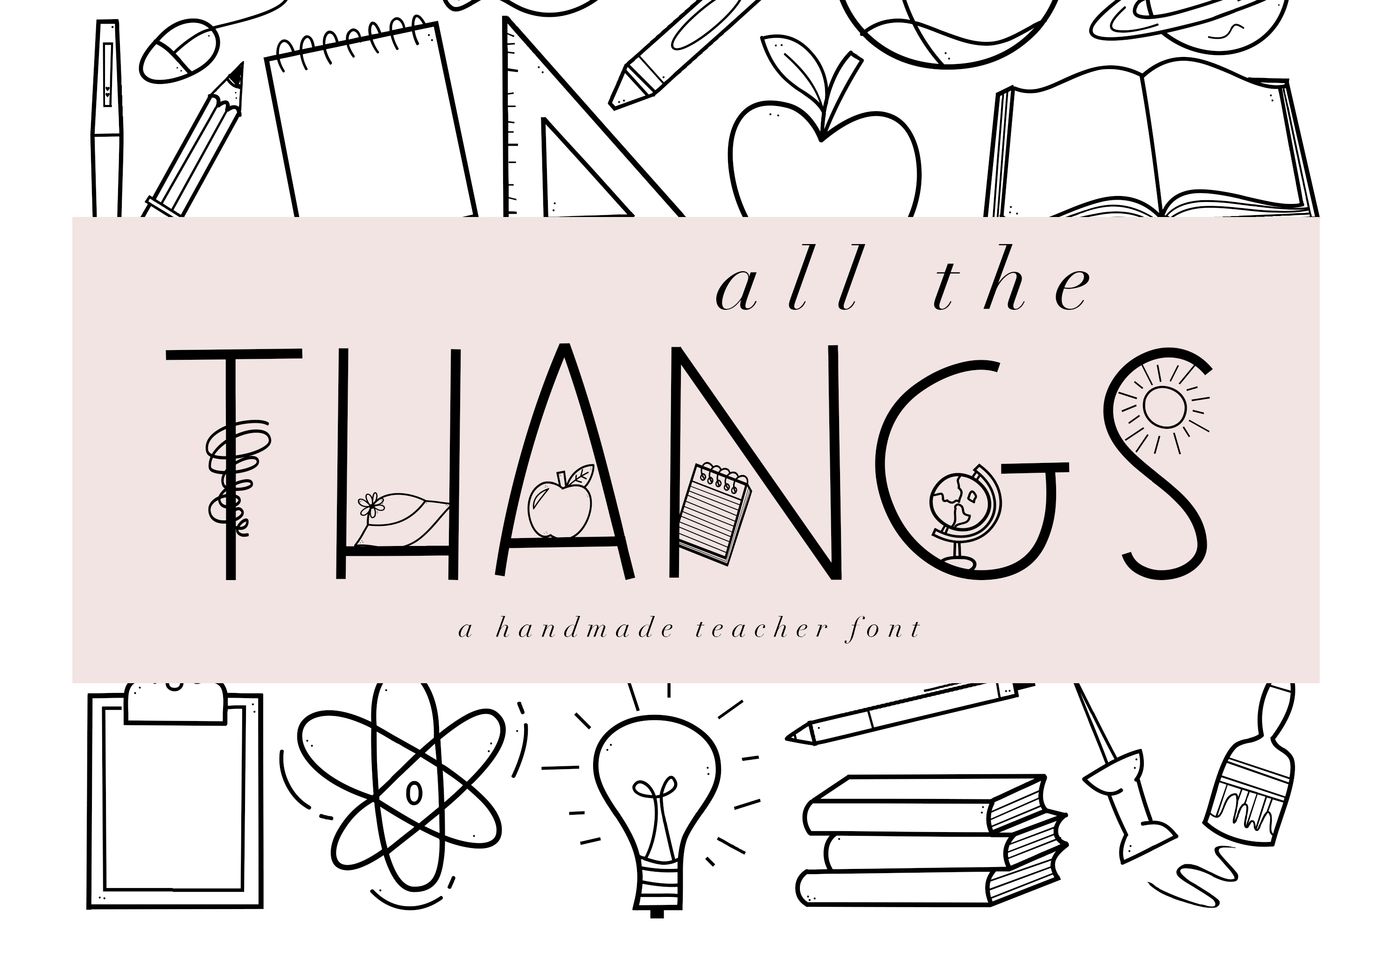 All The Thangs A Handmade Doodle Letter Font By Ka Designs